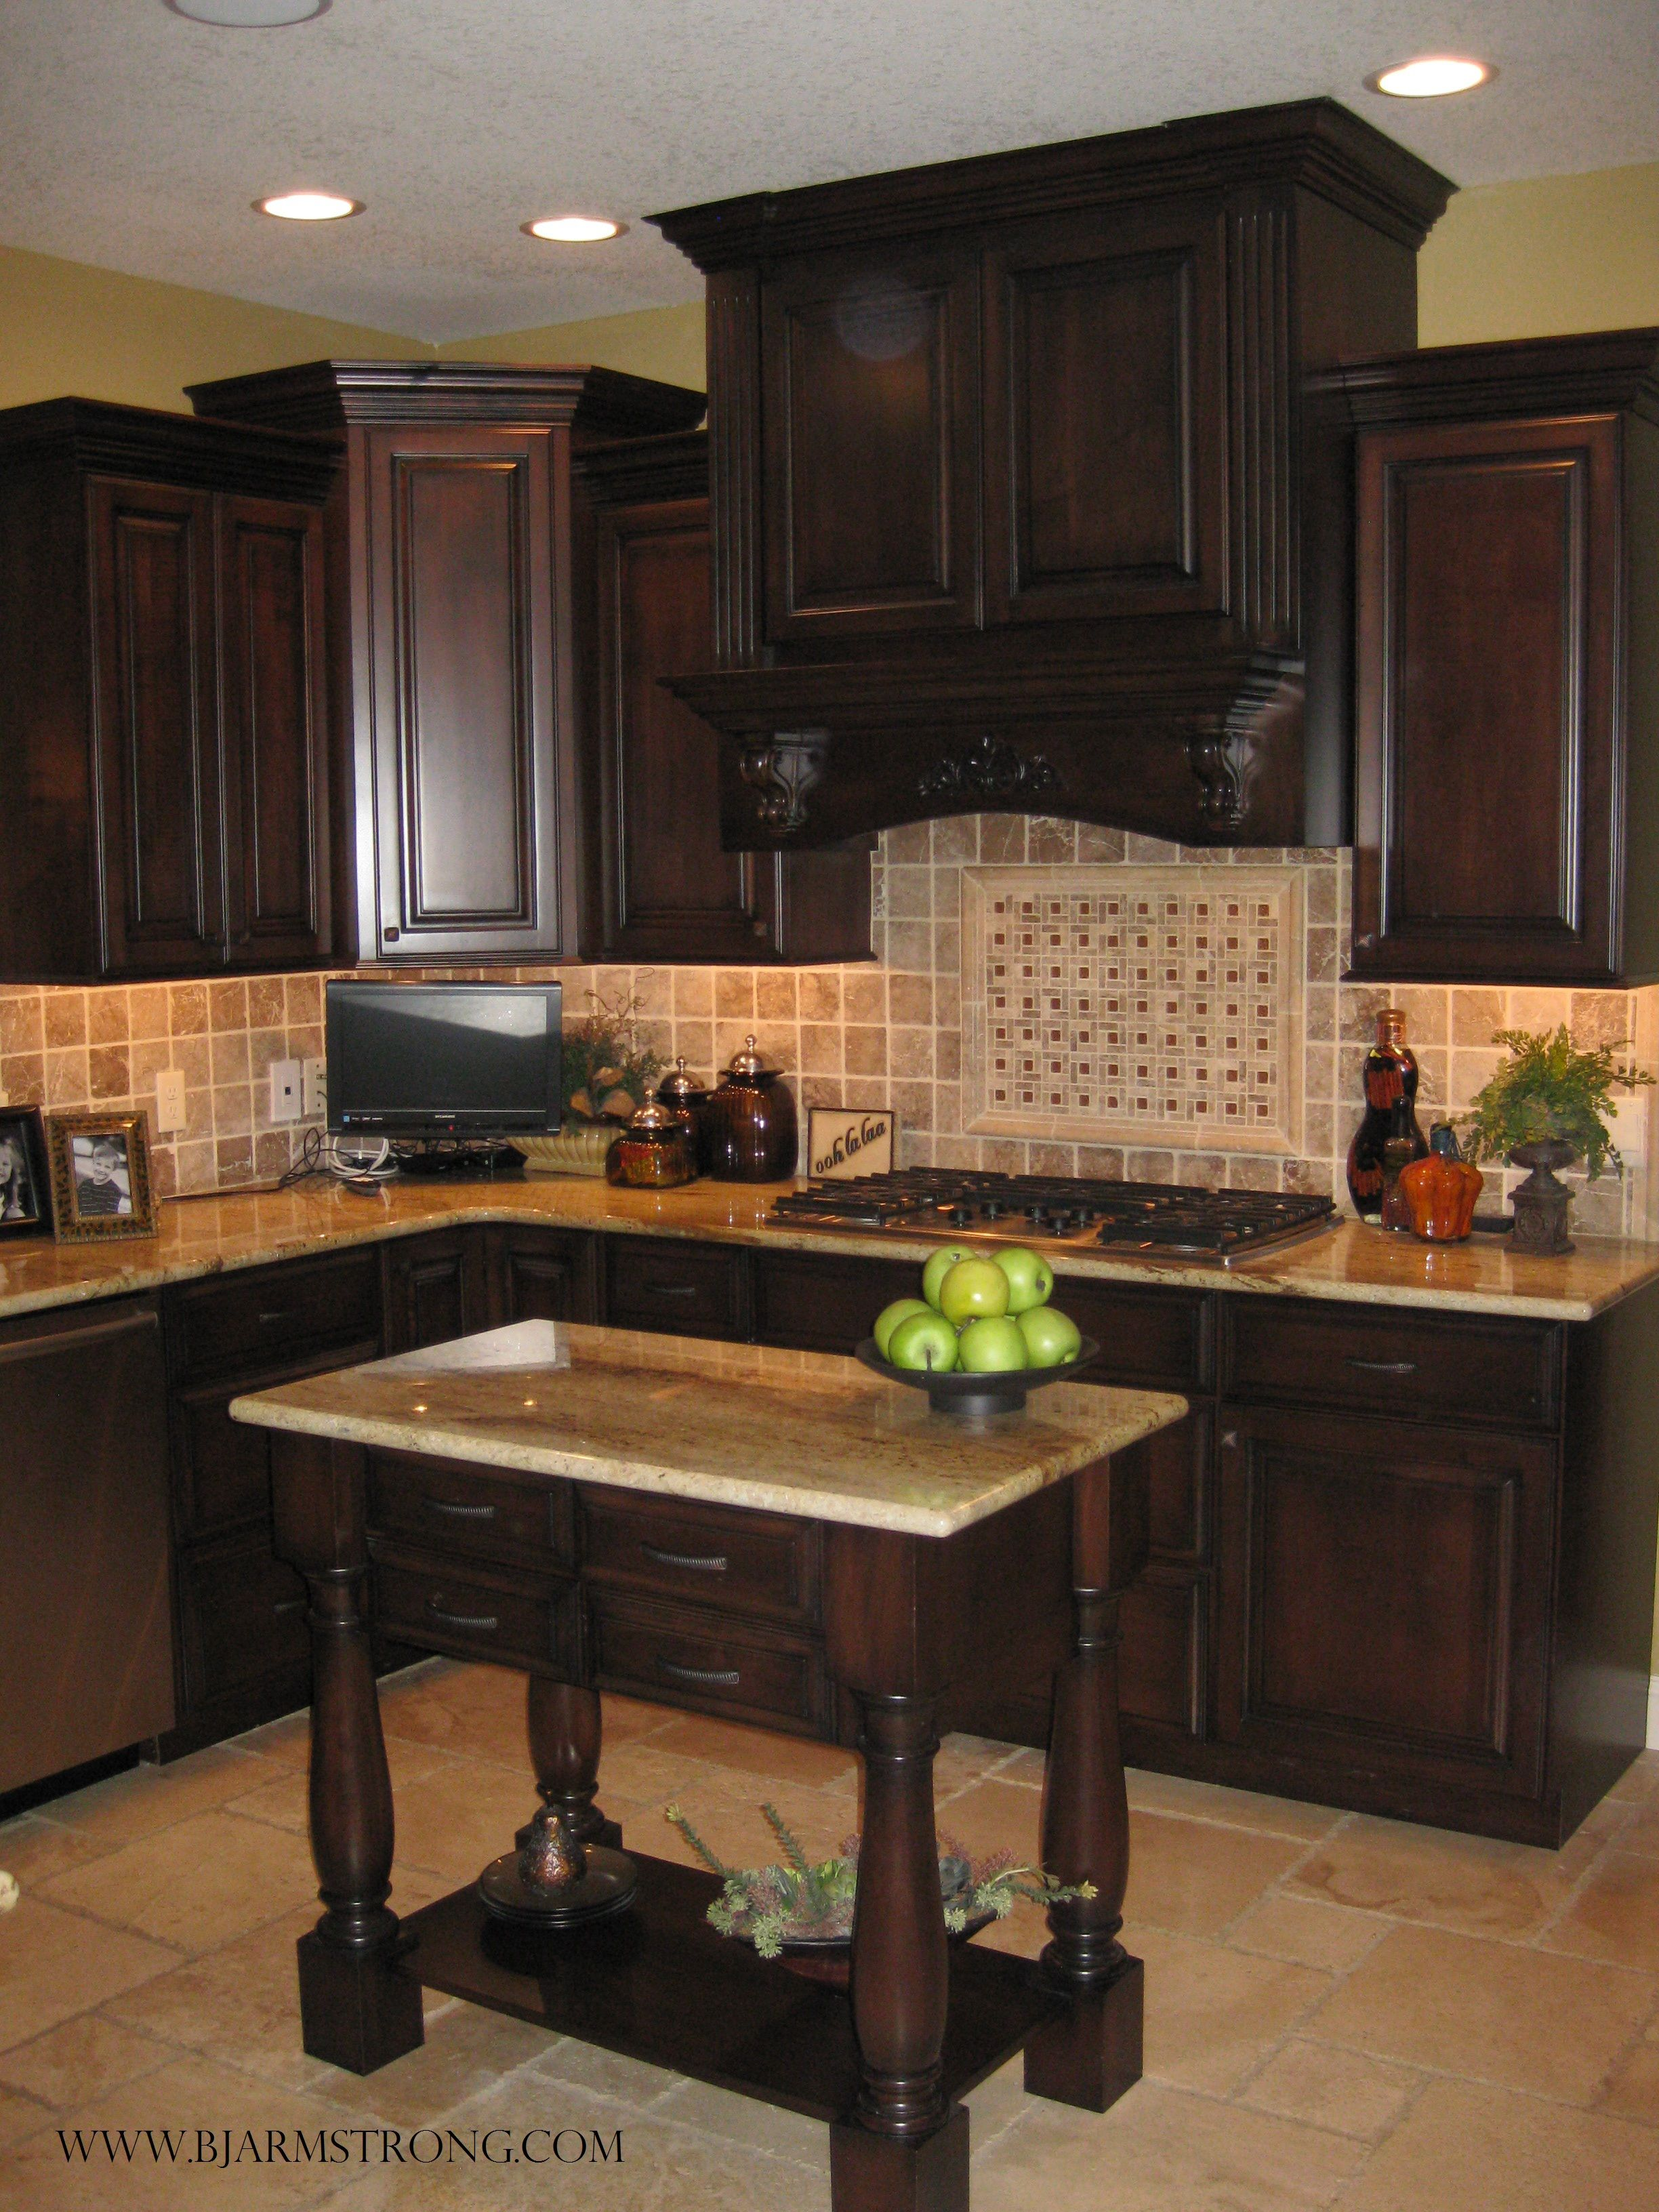 countertops kitchen remodel countertop cambria cabinets blog mn custom part